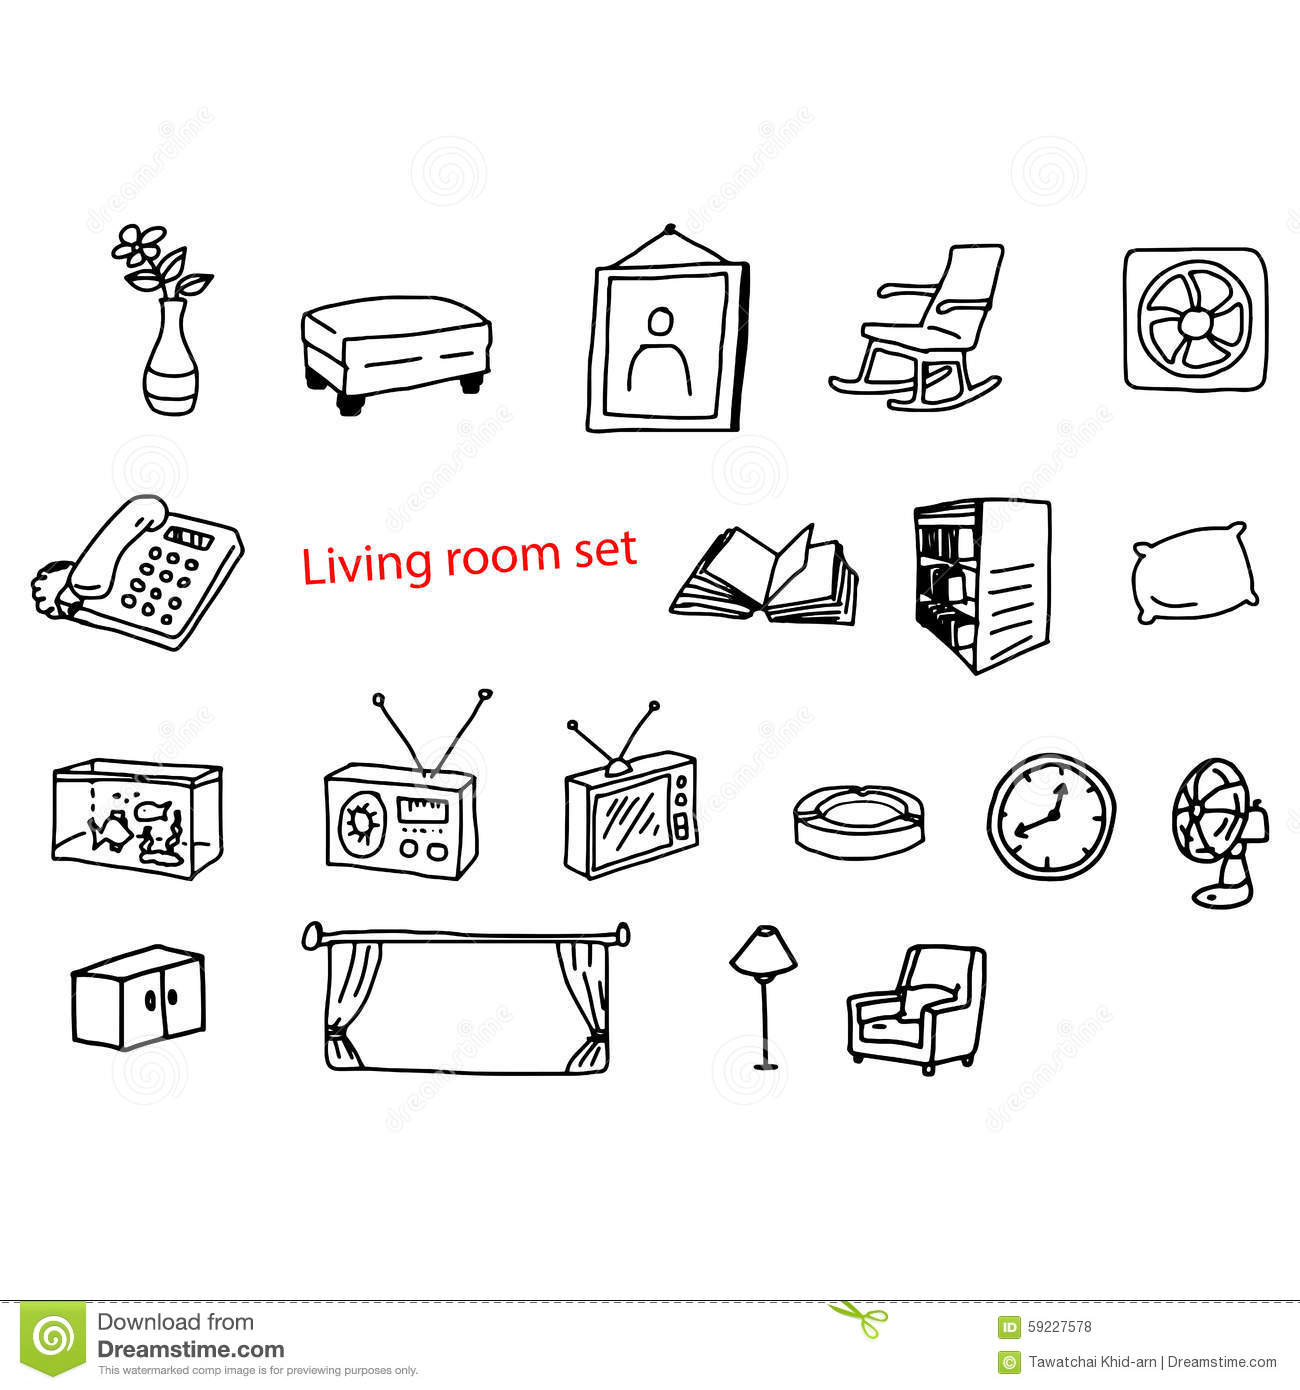 Amazing Illustration Vector Doodles Hand Drawn Objects In Living Room